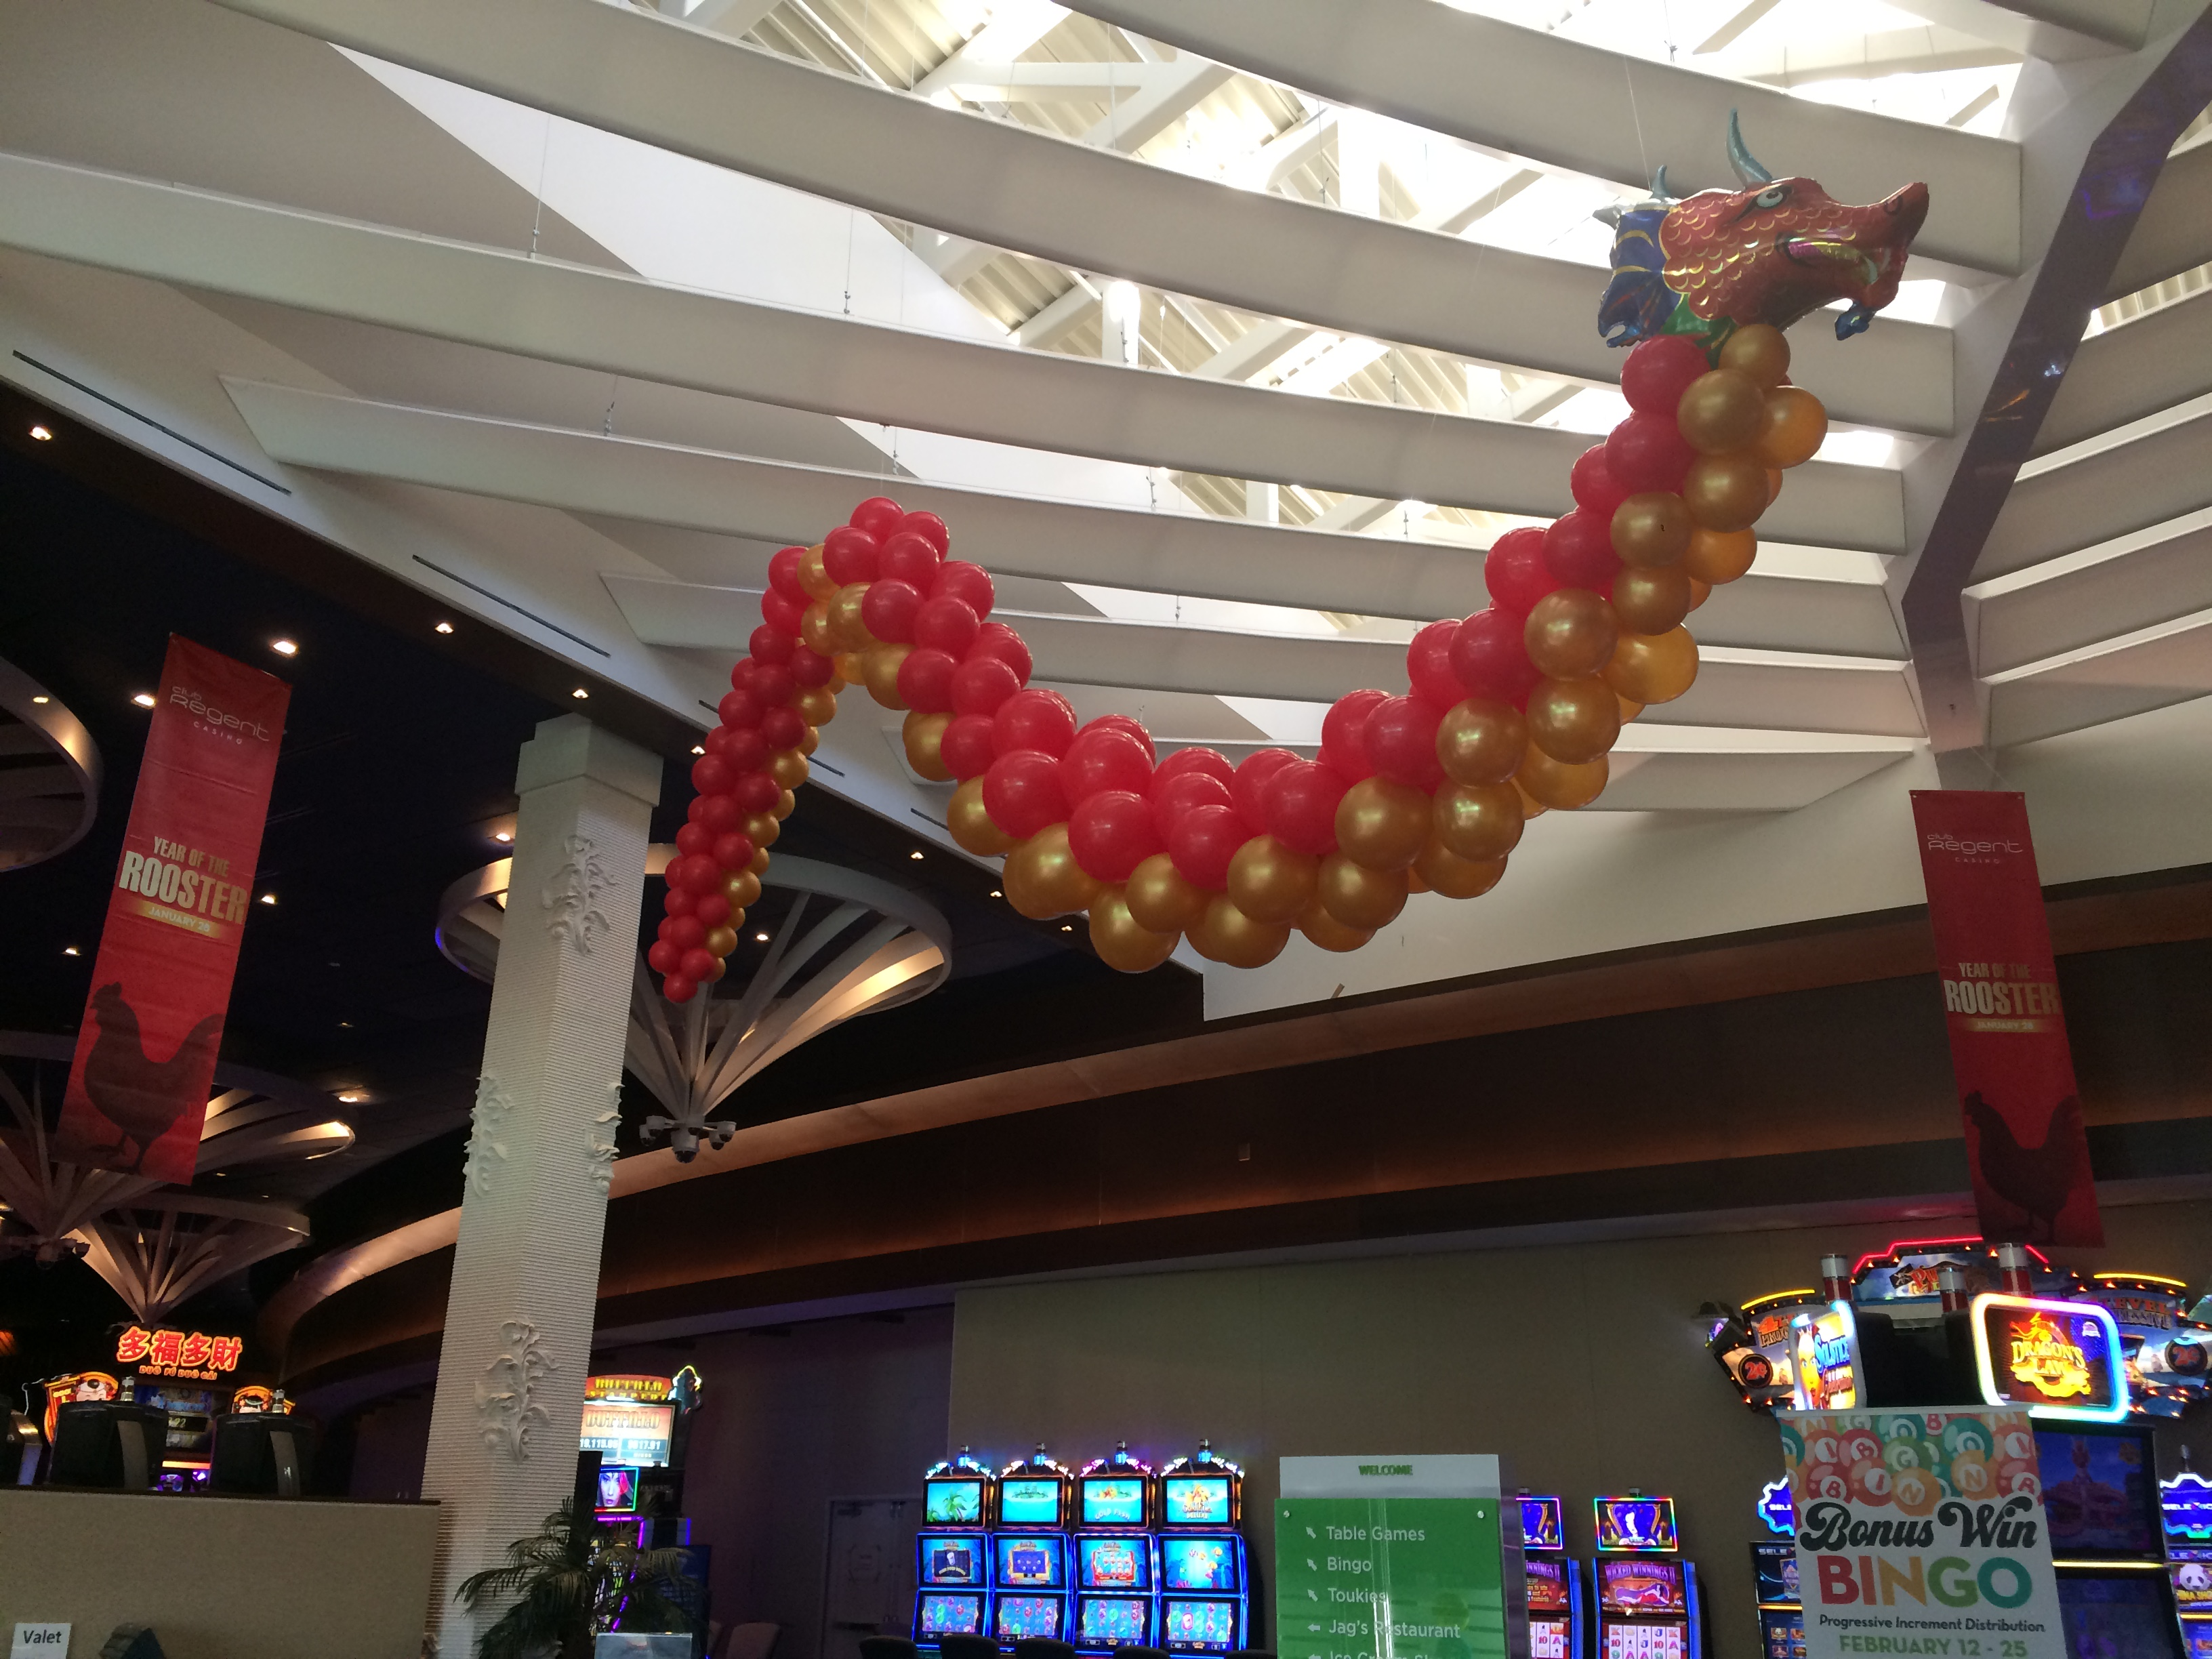 20' Balloon Dragon Sculpture